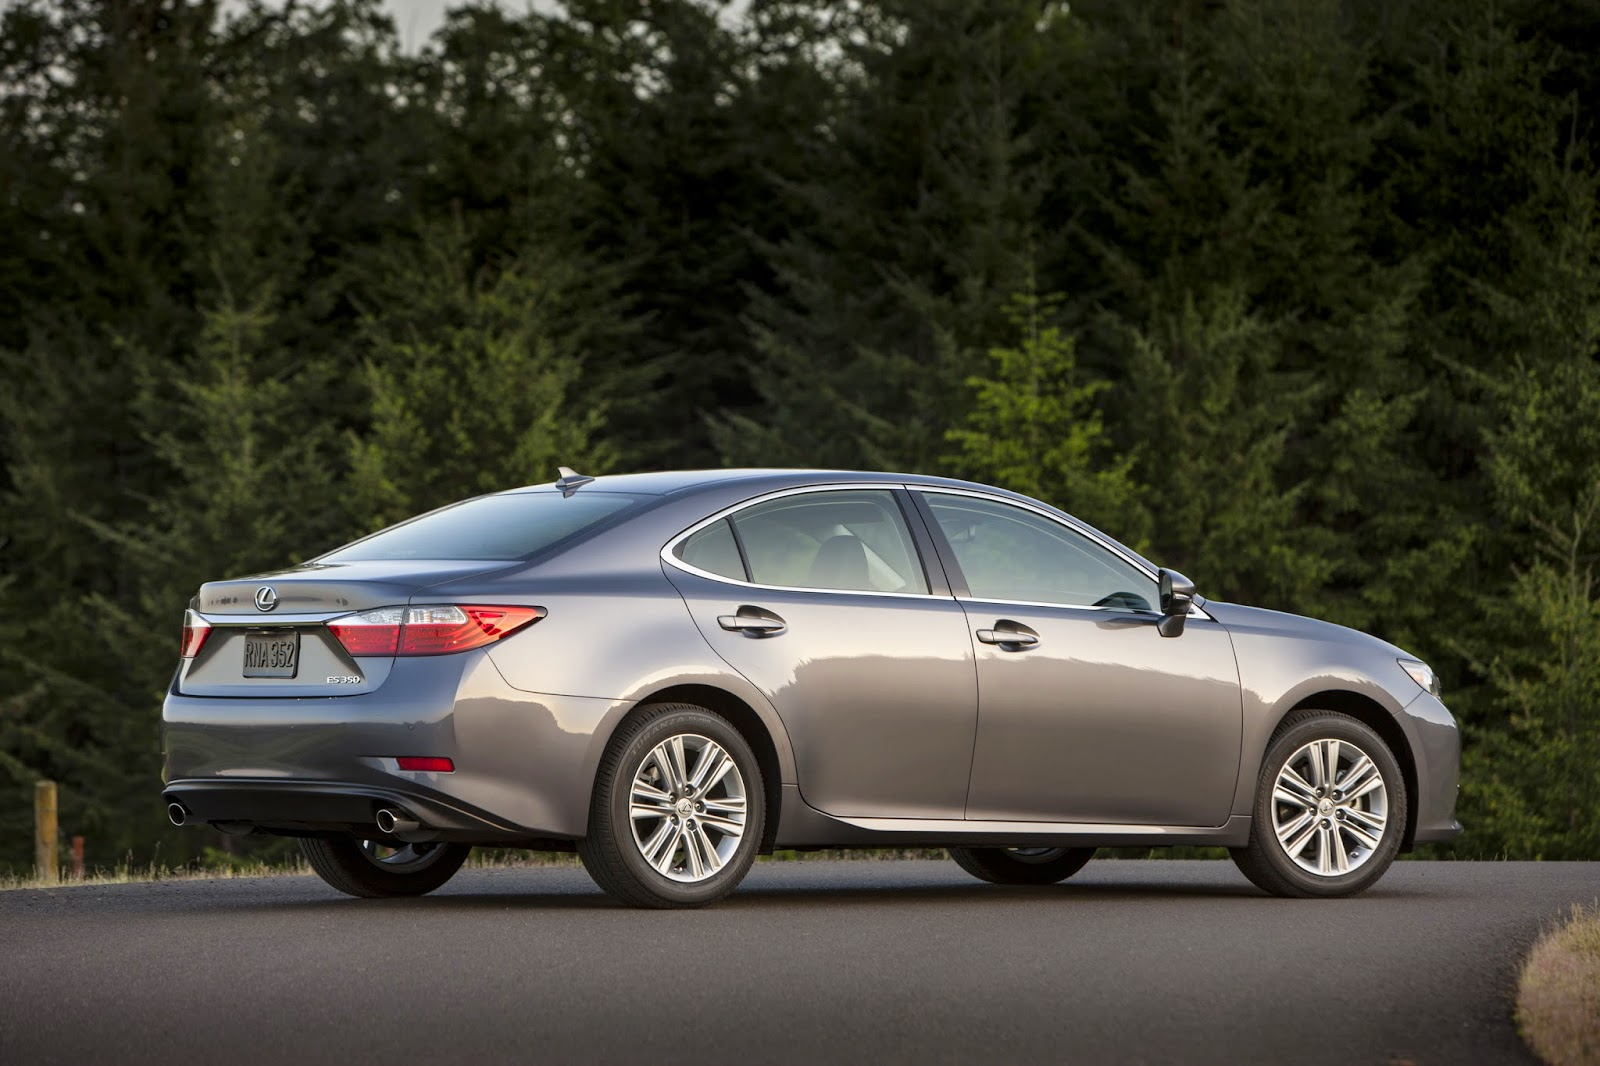 Rear 3/4 view of 2015 Lexus ES350